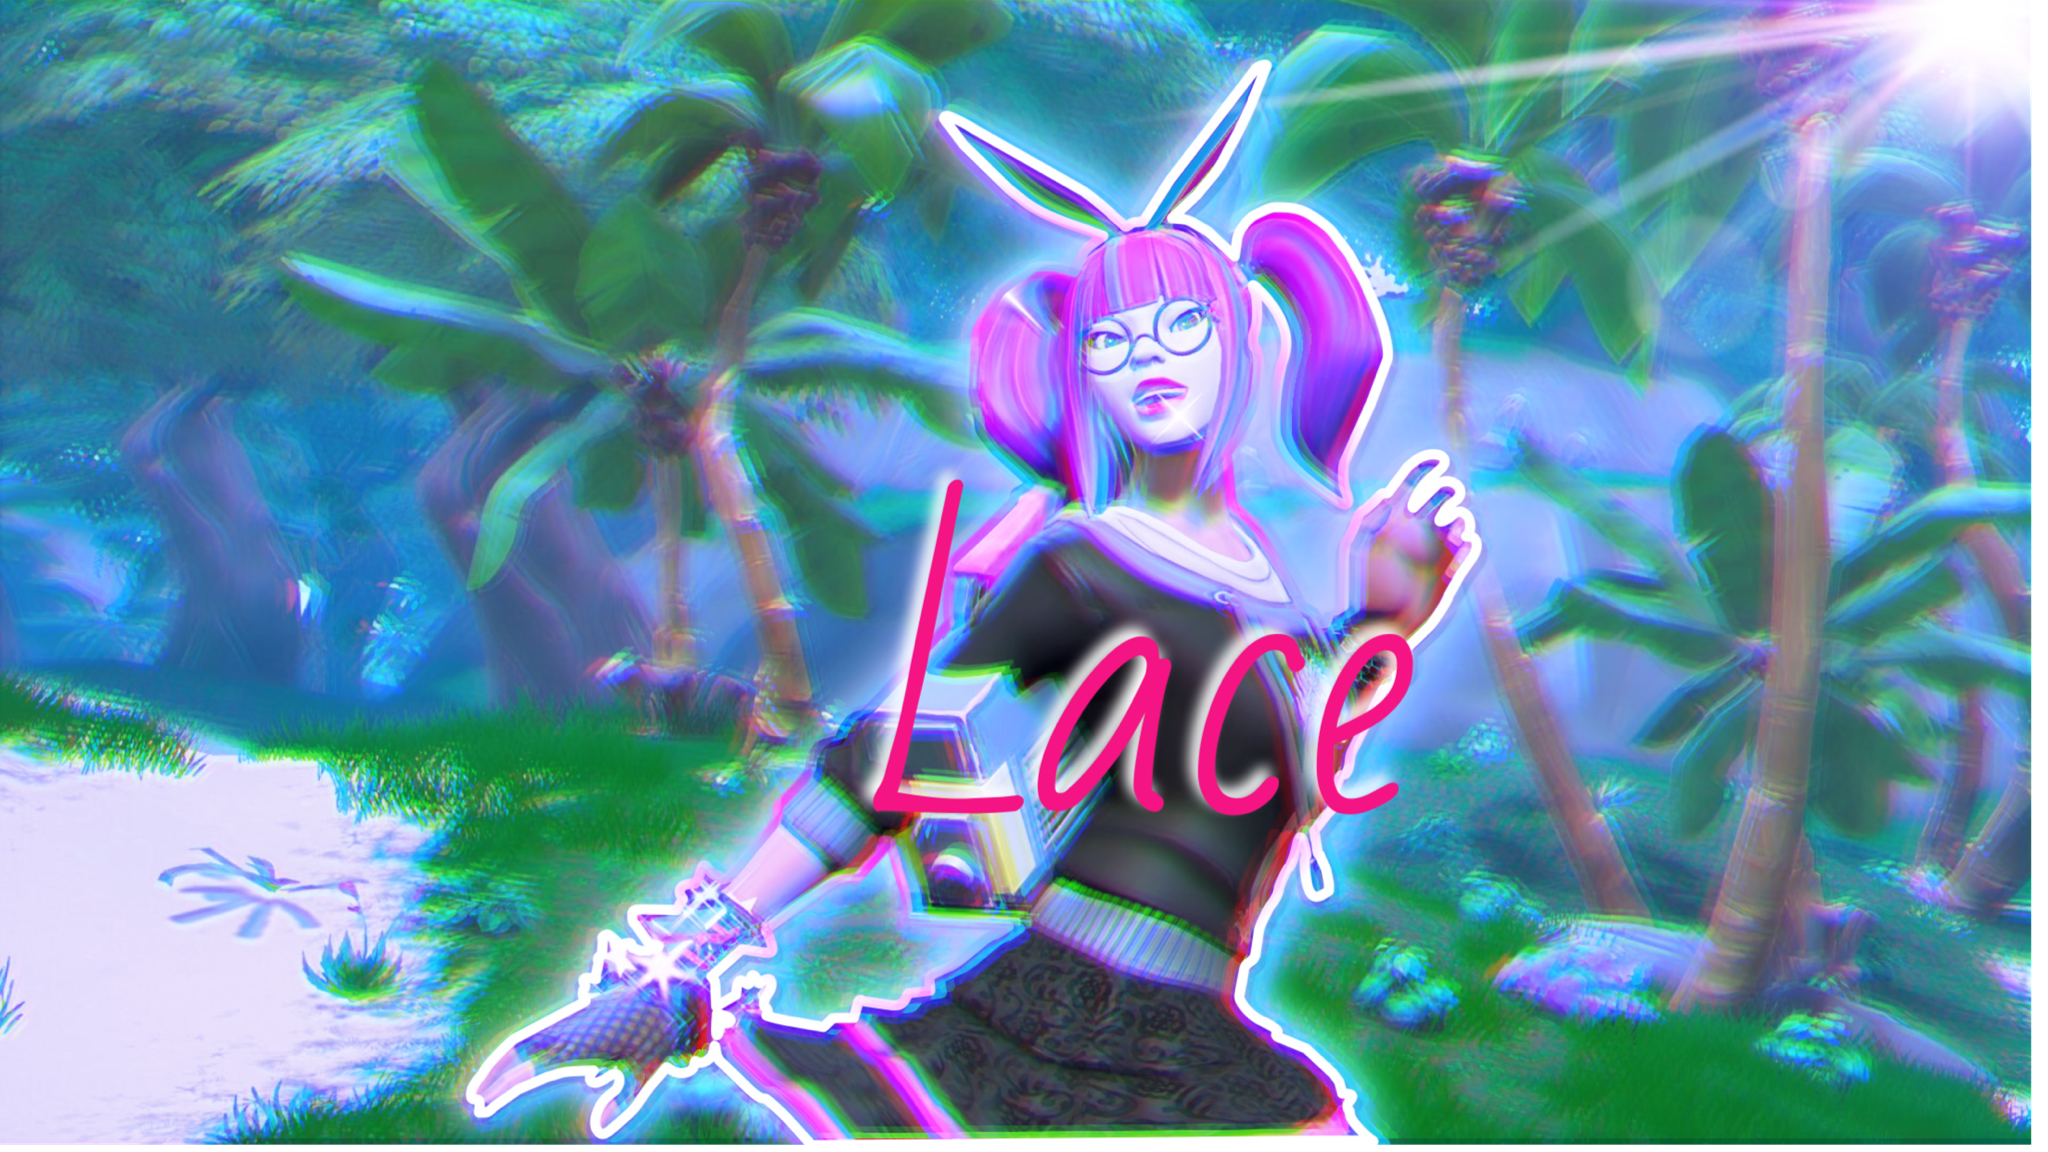 Free Download Lace Fortnite Album On Imgur 2048x1152 For